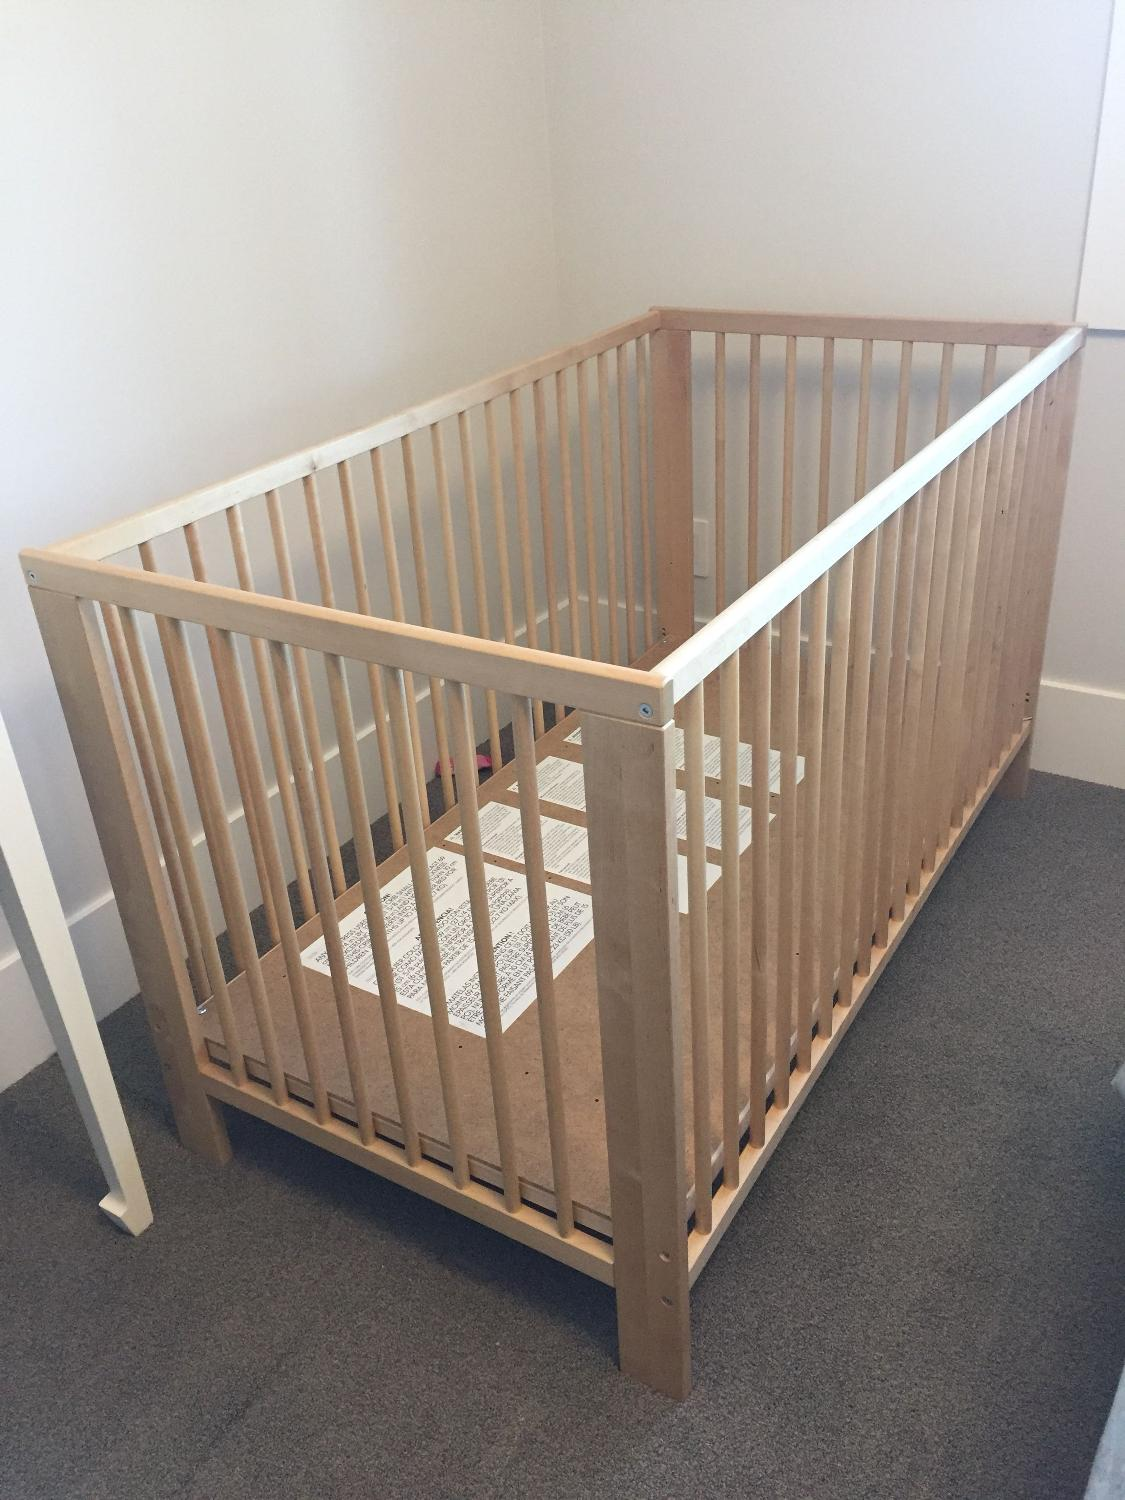 Find More Ikea Sniglar Crib For Sale At Up To 90 Off